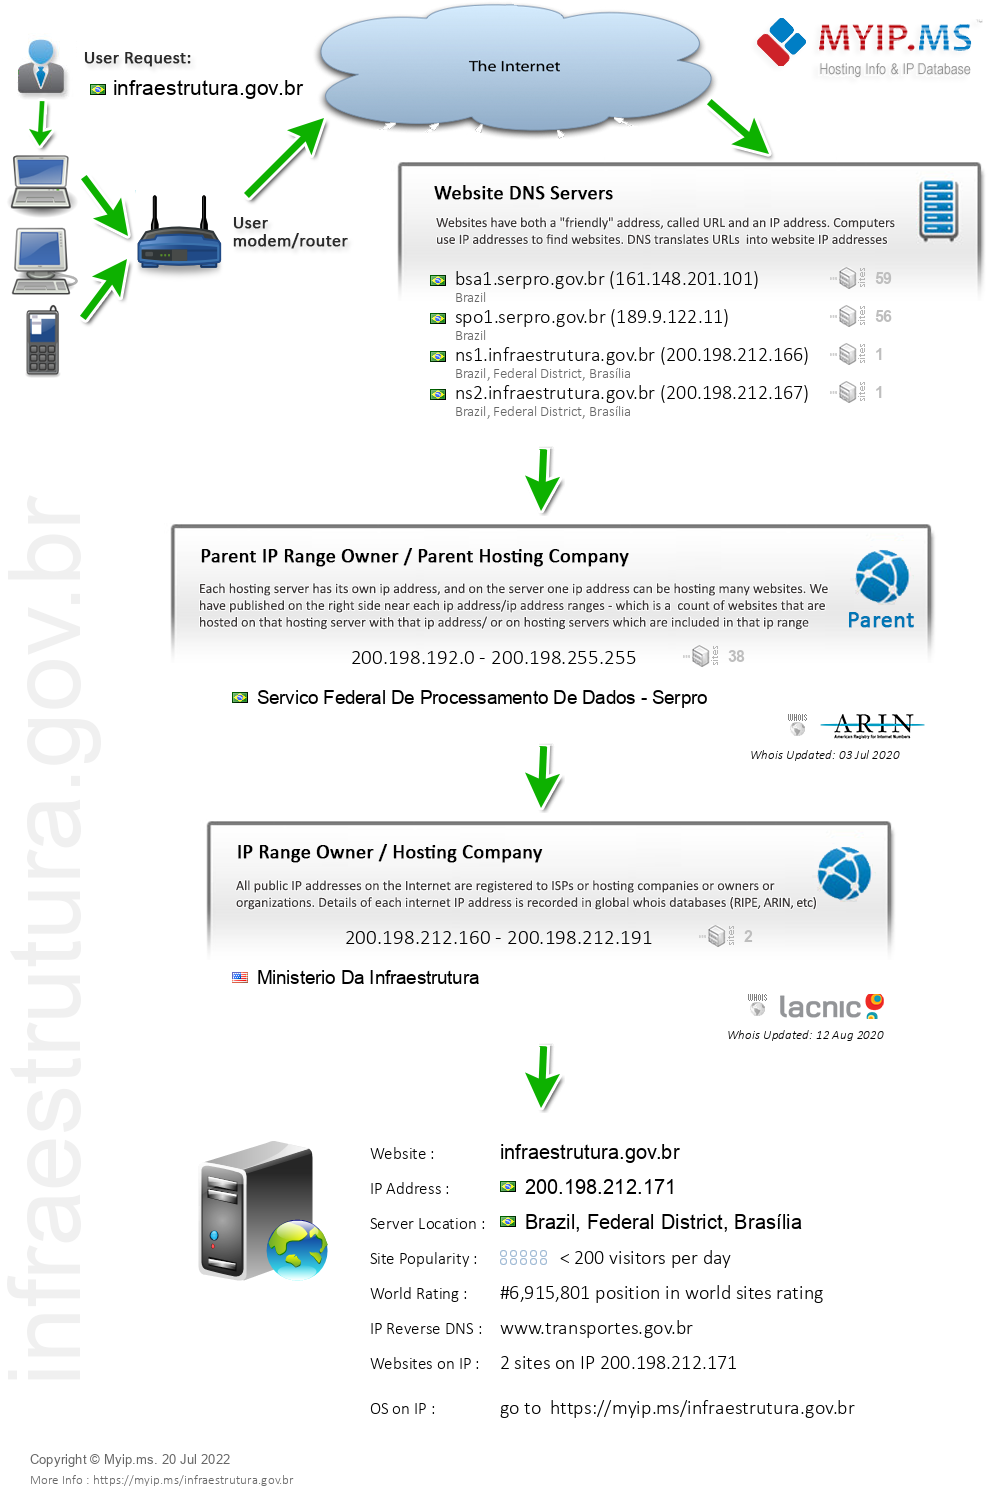 Infraestrutura.gov.br - Website Hosting Visual IP Diagram